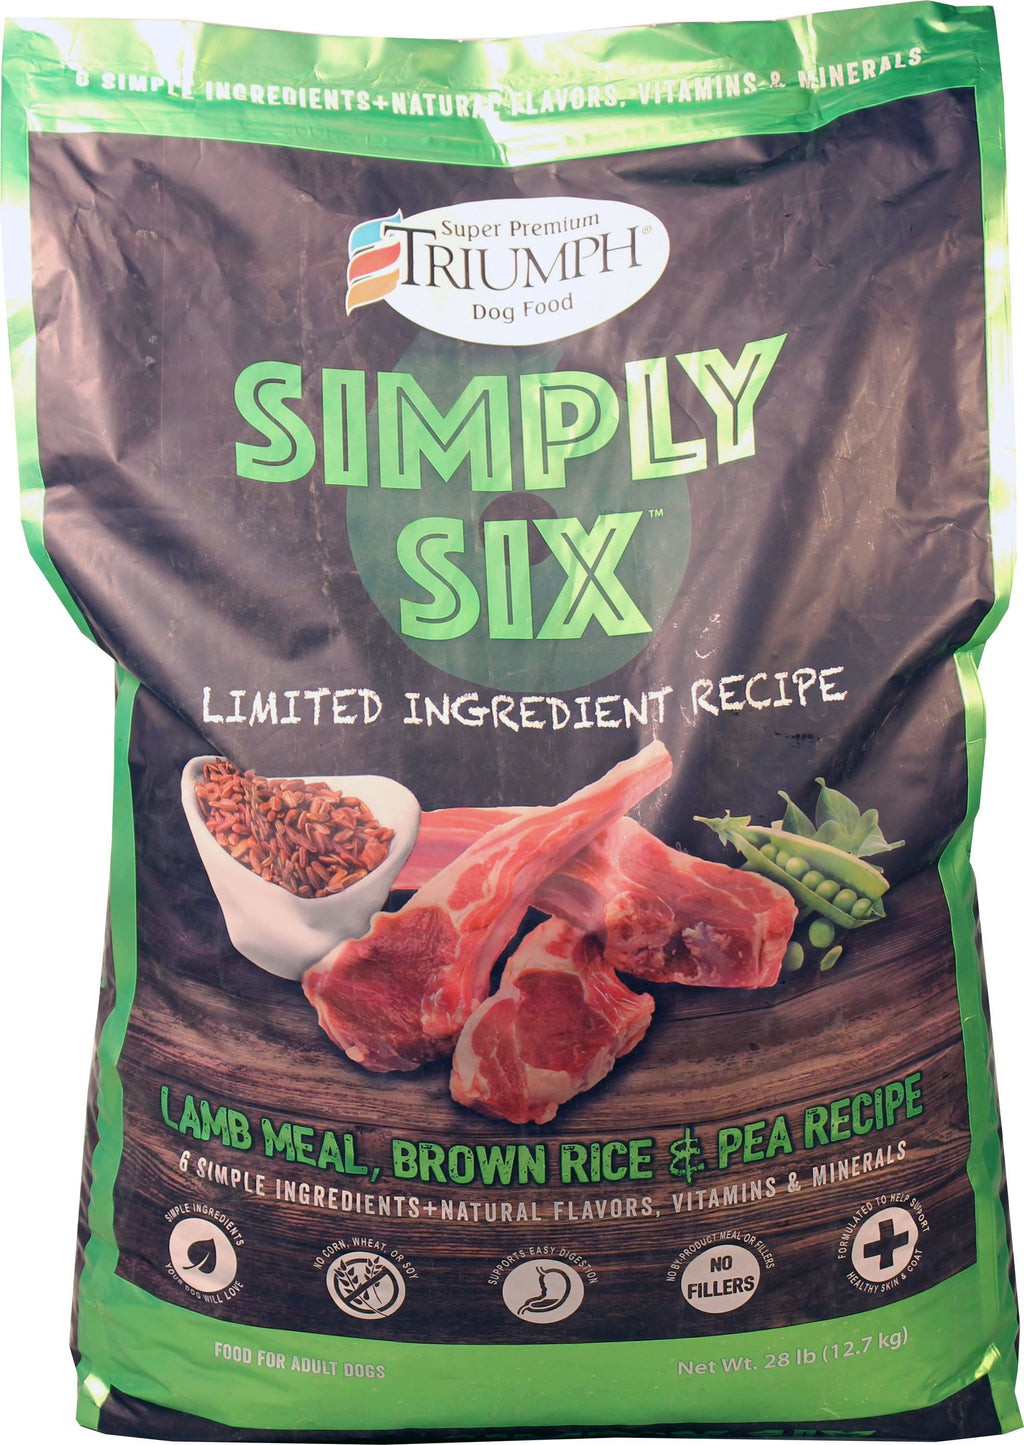 Triumph Simply Six Limited Ingredient Dog Food - iPupnStuff.com